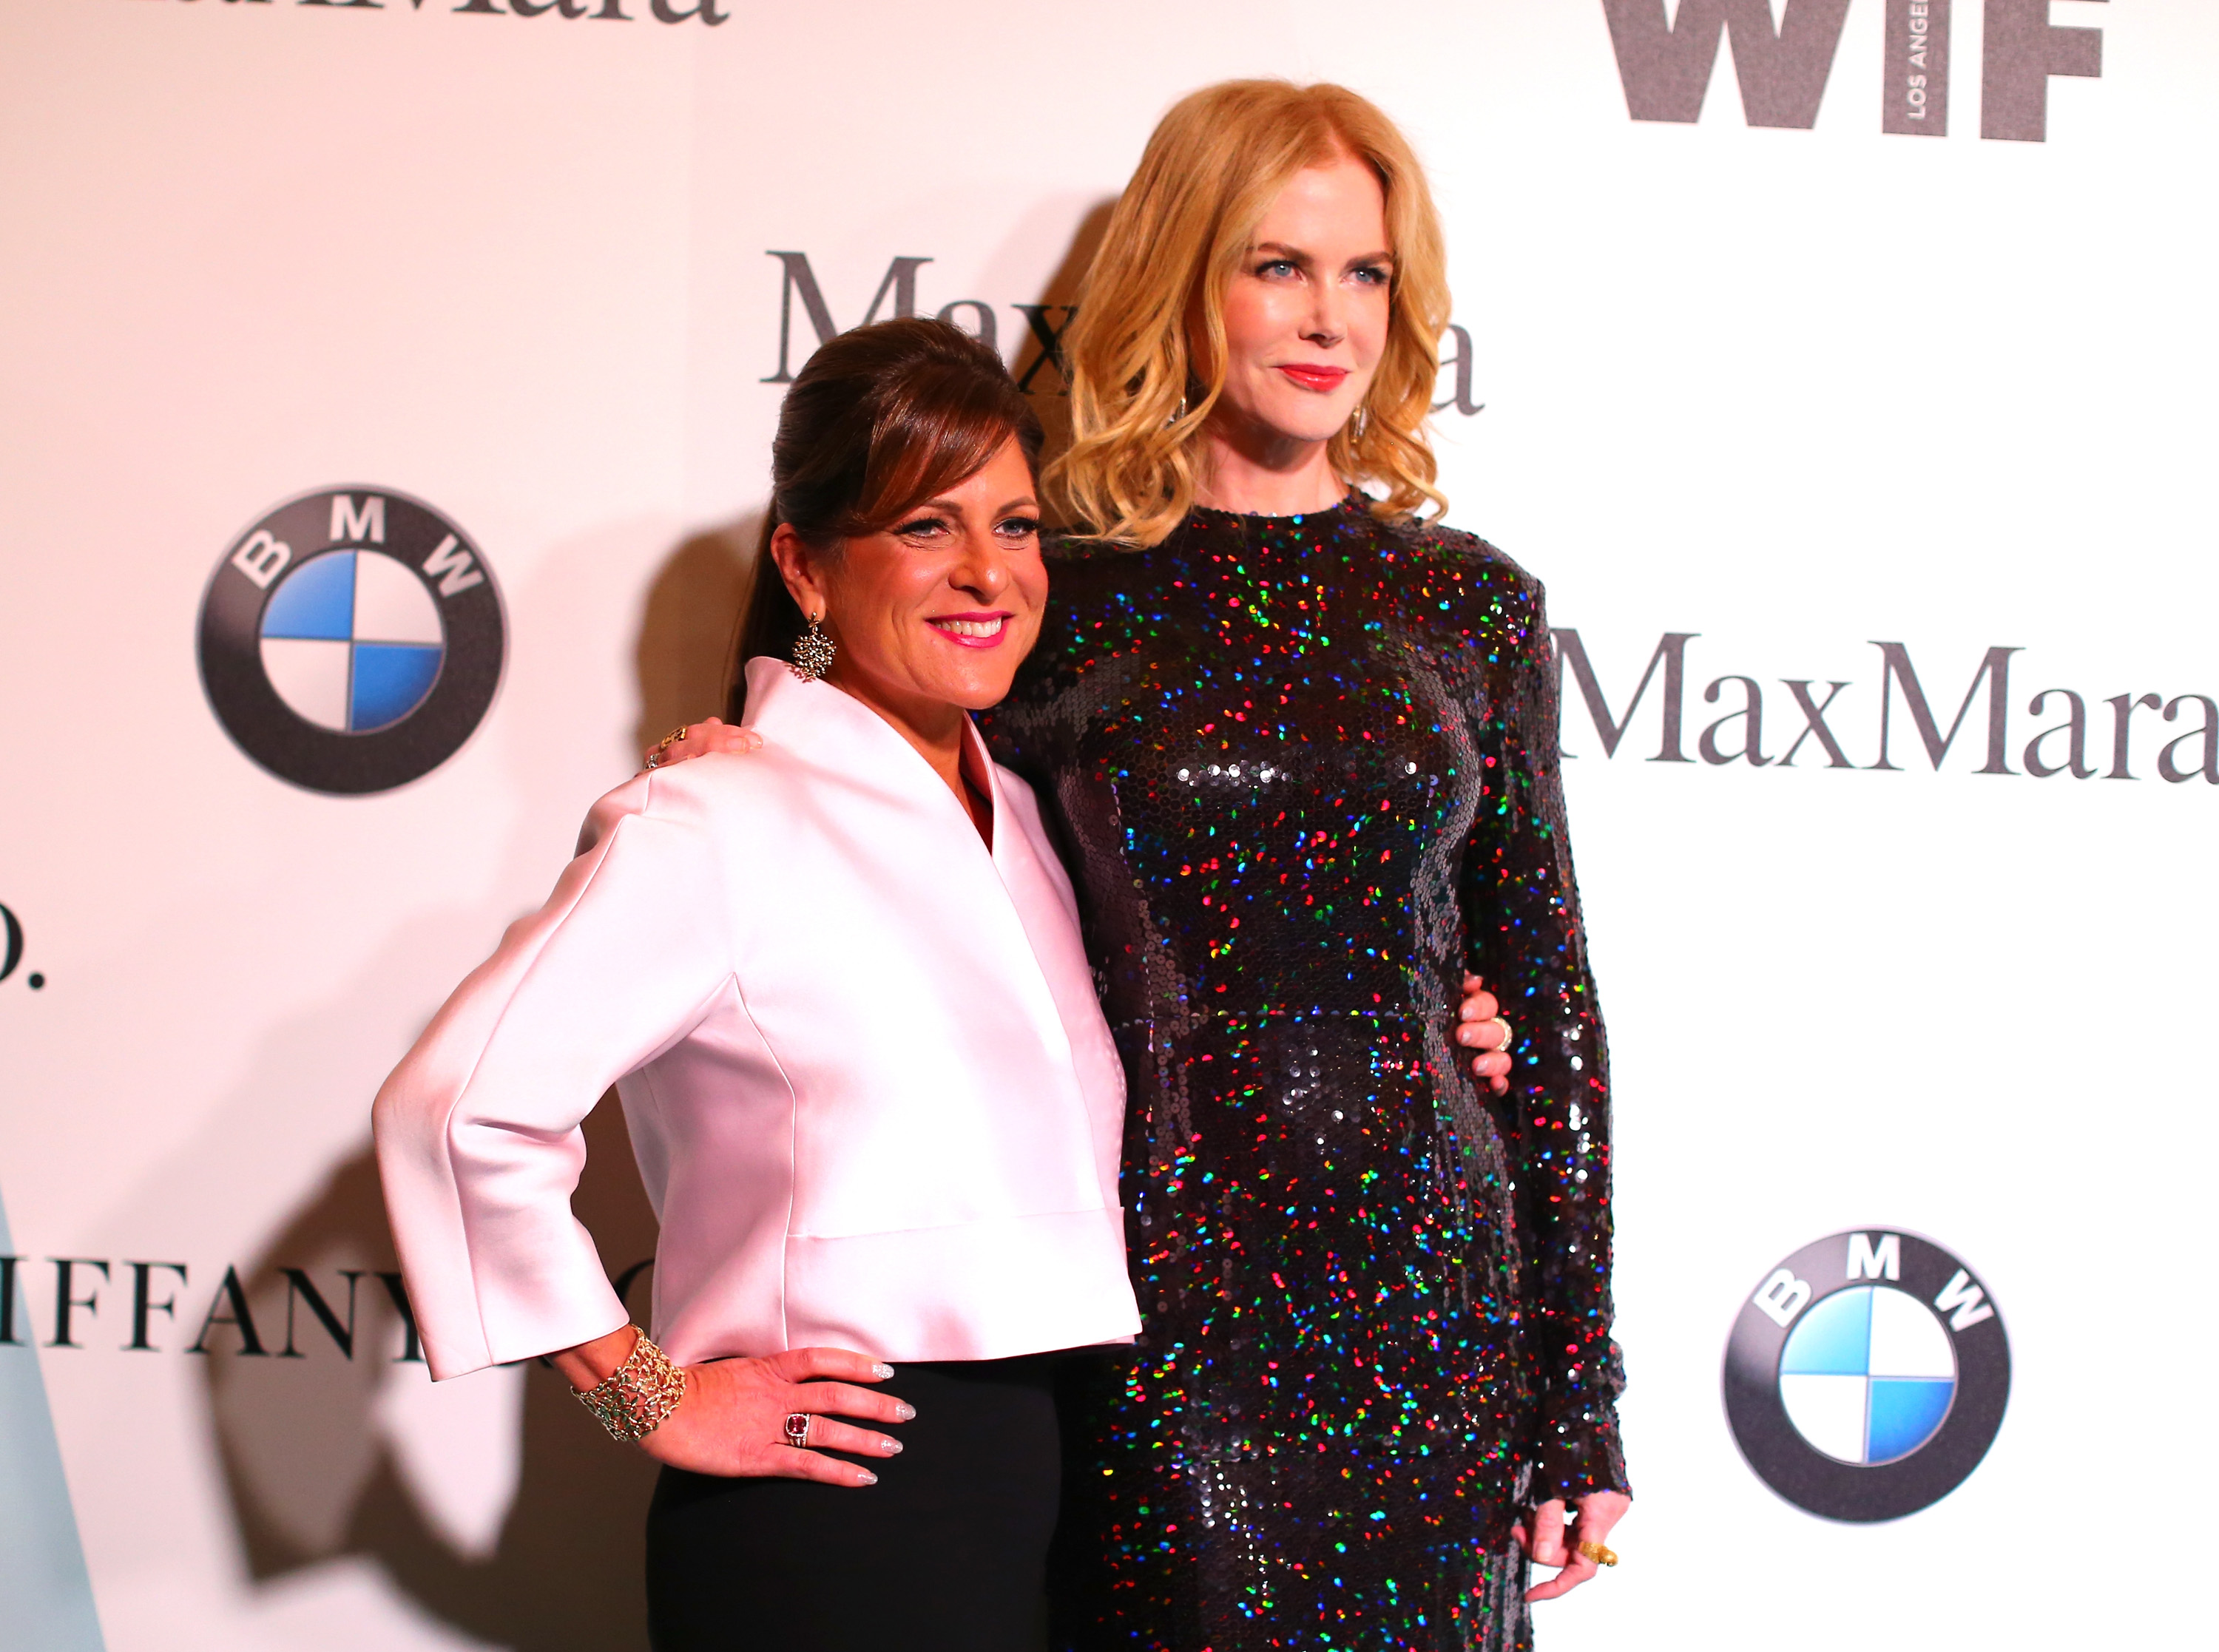 CENTURY CITY, CA - JUNE 16:  President, Women In Film, Cathy Schulman (L) and honoree Nicole Kidman attend the Women In Film 2015 Crystal + Lucy Awards Presented by Max Mara, BMW of North America, and Tiffany & Co. at the Hyatt Regency Century Plaza on June 16, 2015 in Century City, California.  (Photo by Mark Davis/Getty Images for Women in Film)